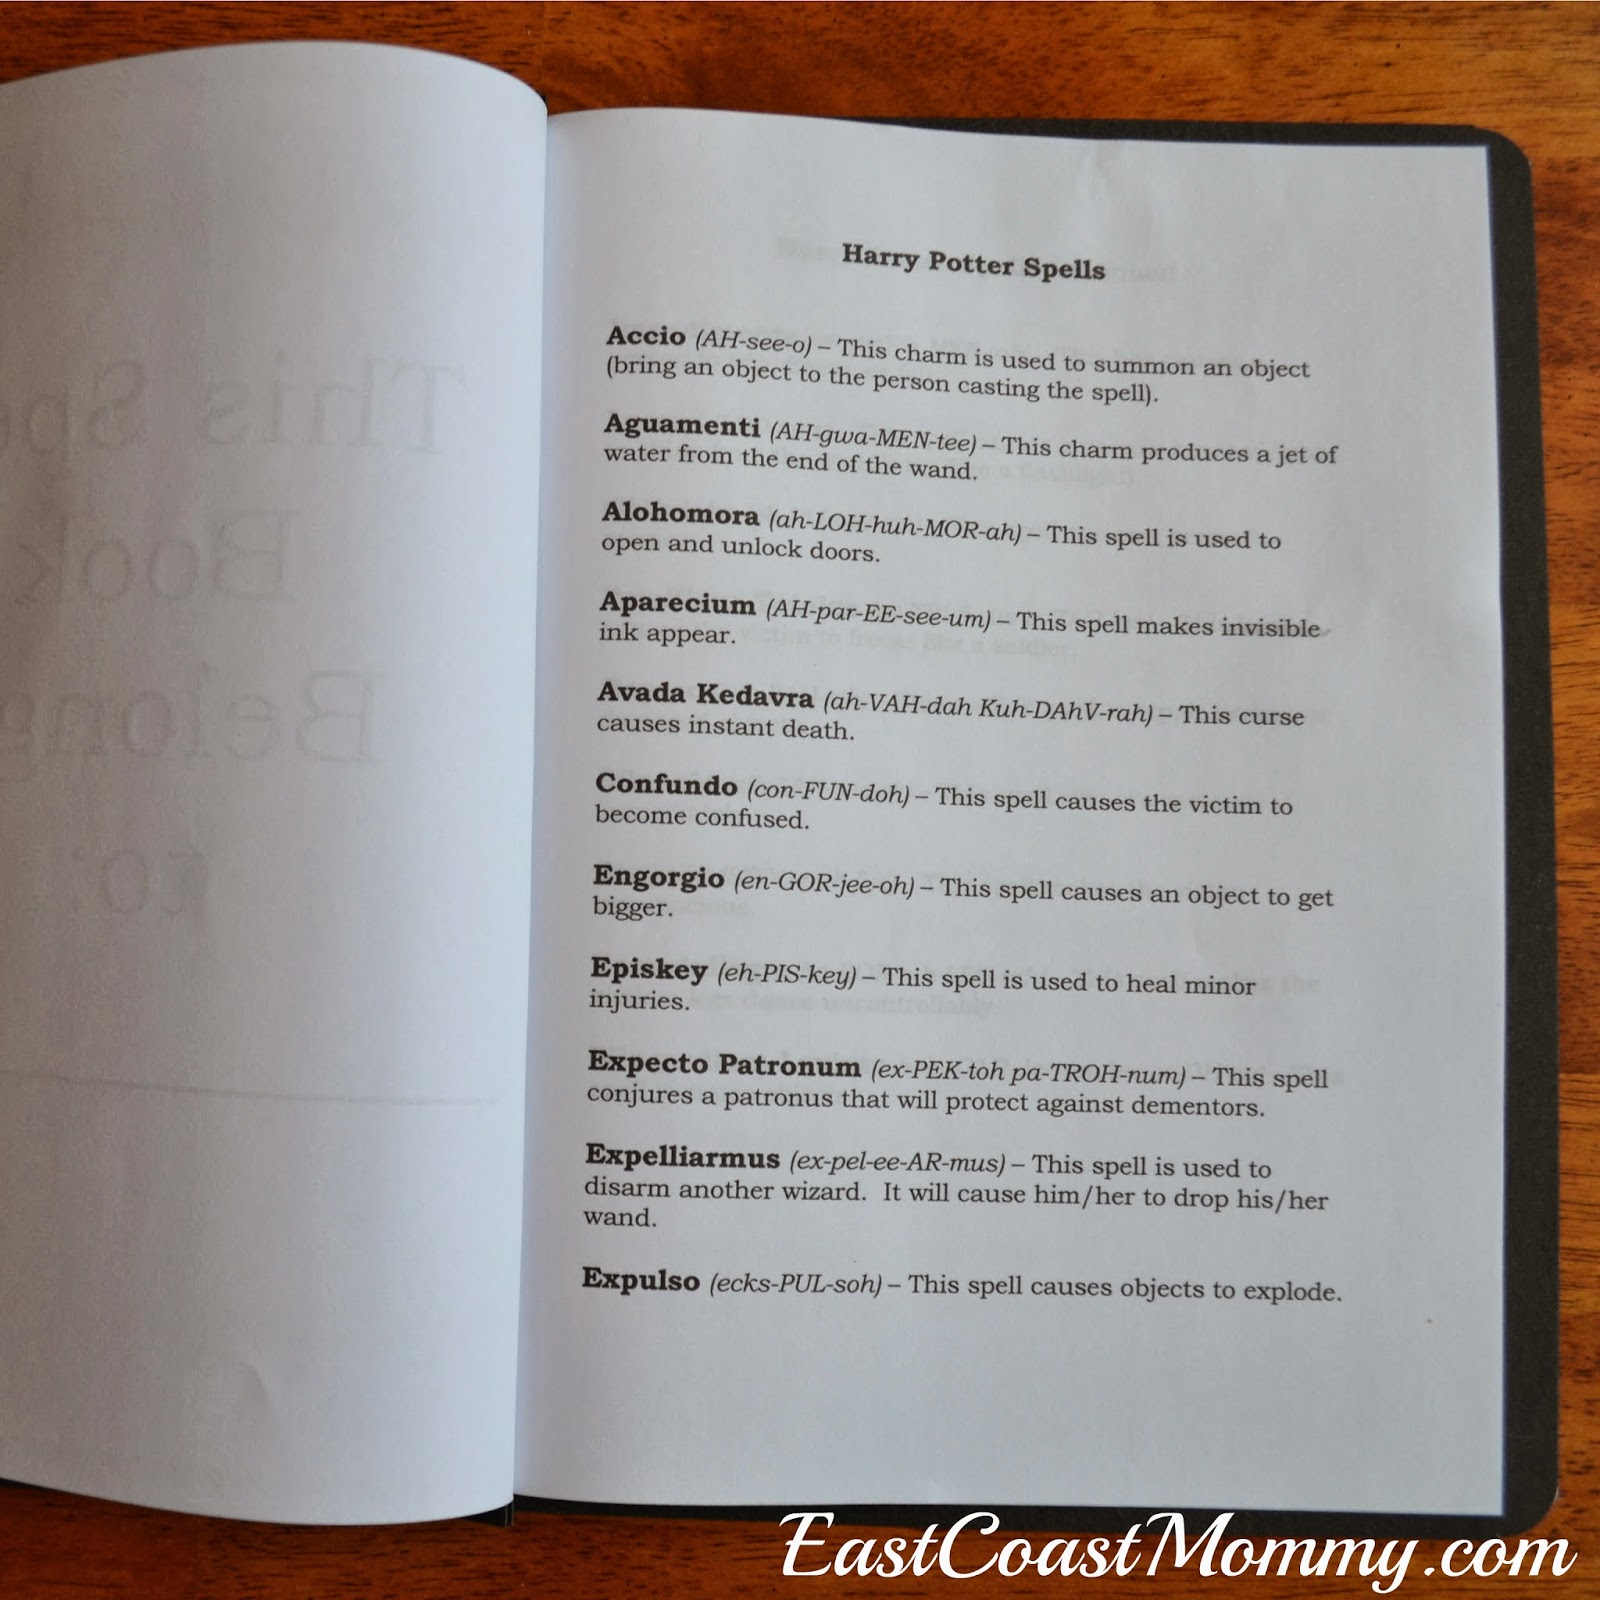 image about Harry Potter Spell Book Printable called East Coastline Mommy: Harry Potter Spell Publications and Quills with